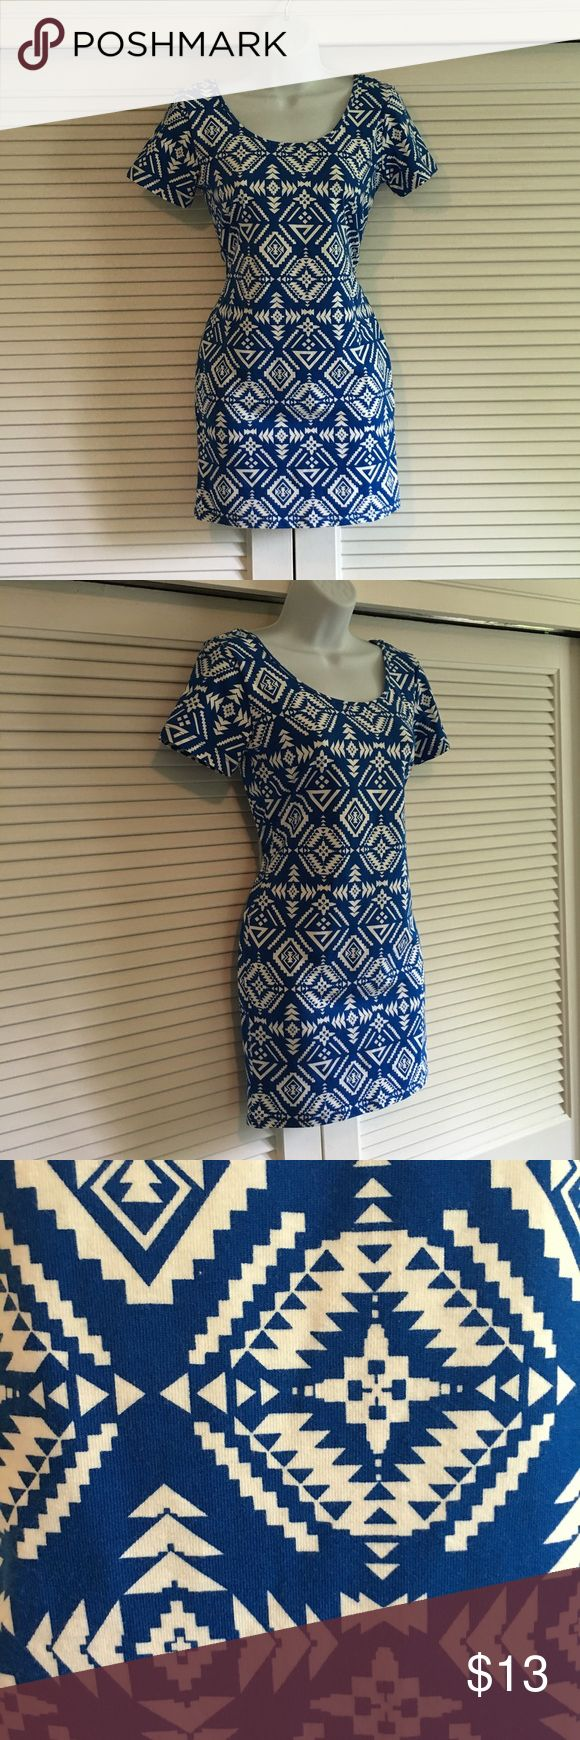 Forever 21 Bodycon Dress Blue and white print bodycon dress from Forever 21. Like new. Short sleeves and scoop neck. Size L. Forever 21 Dresses